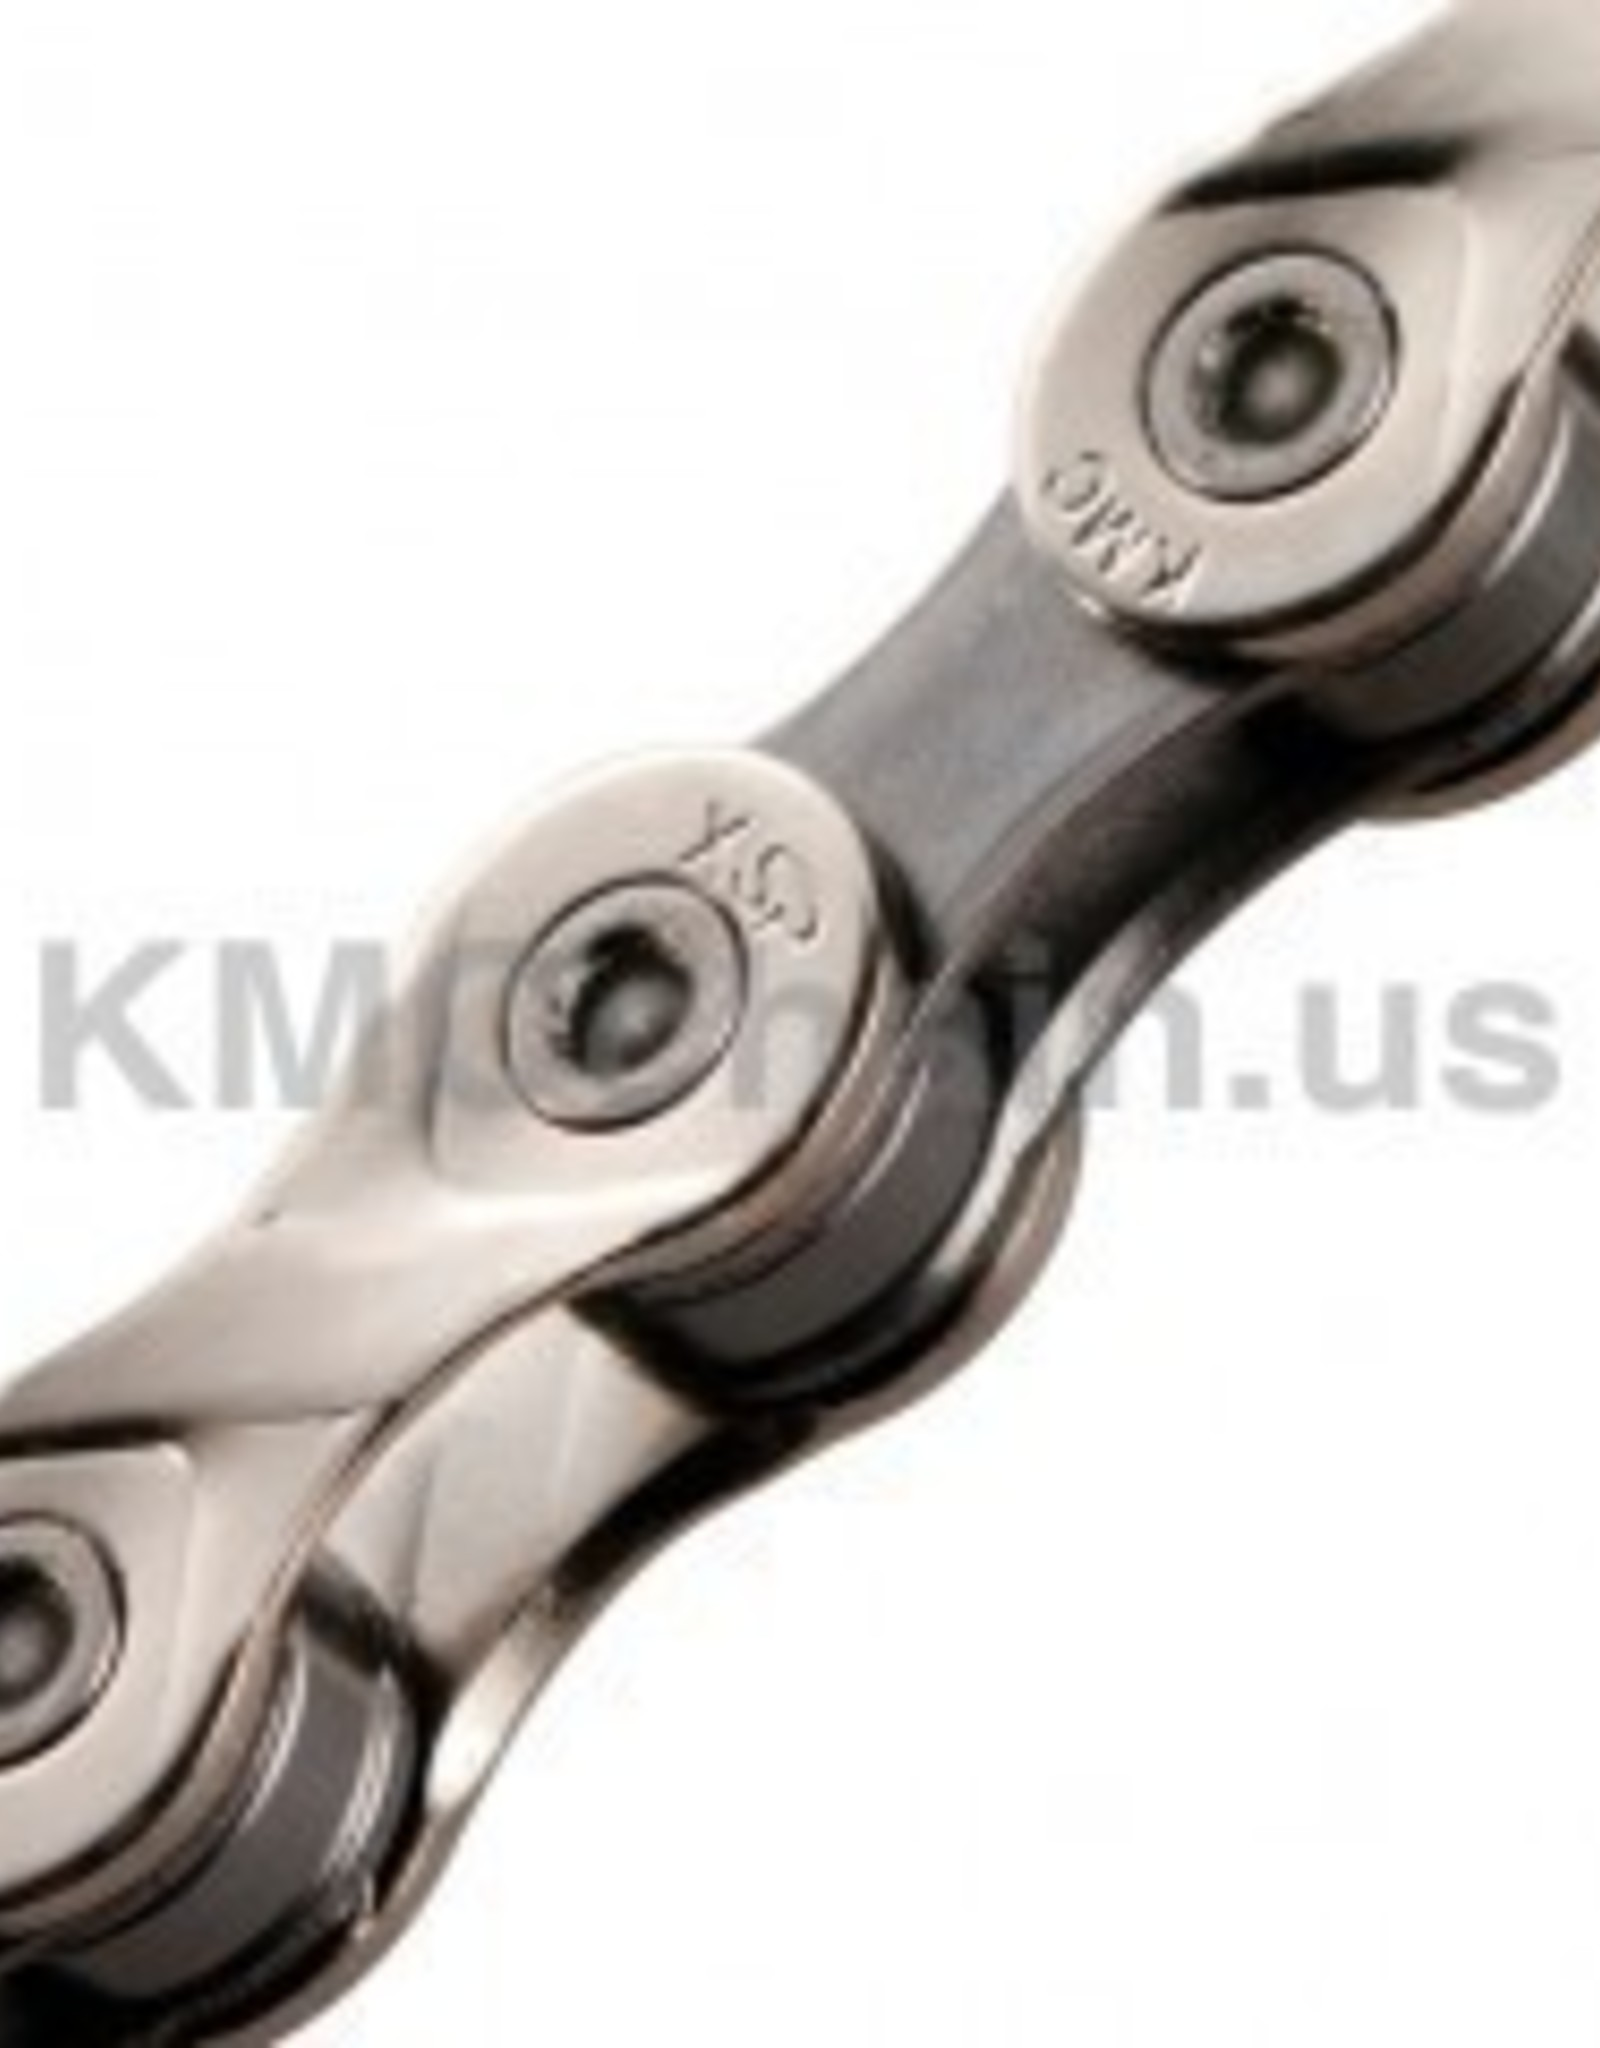 KMC KMC X9.93 Chain - per foot